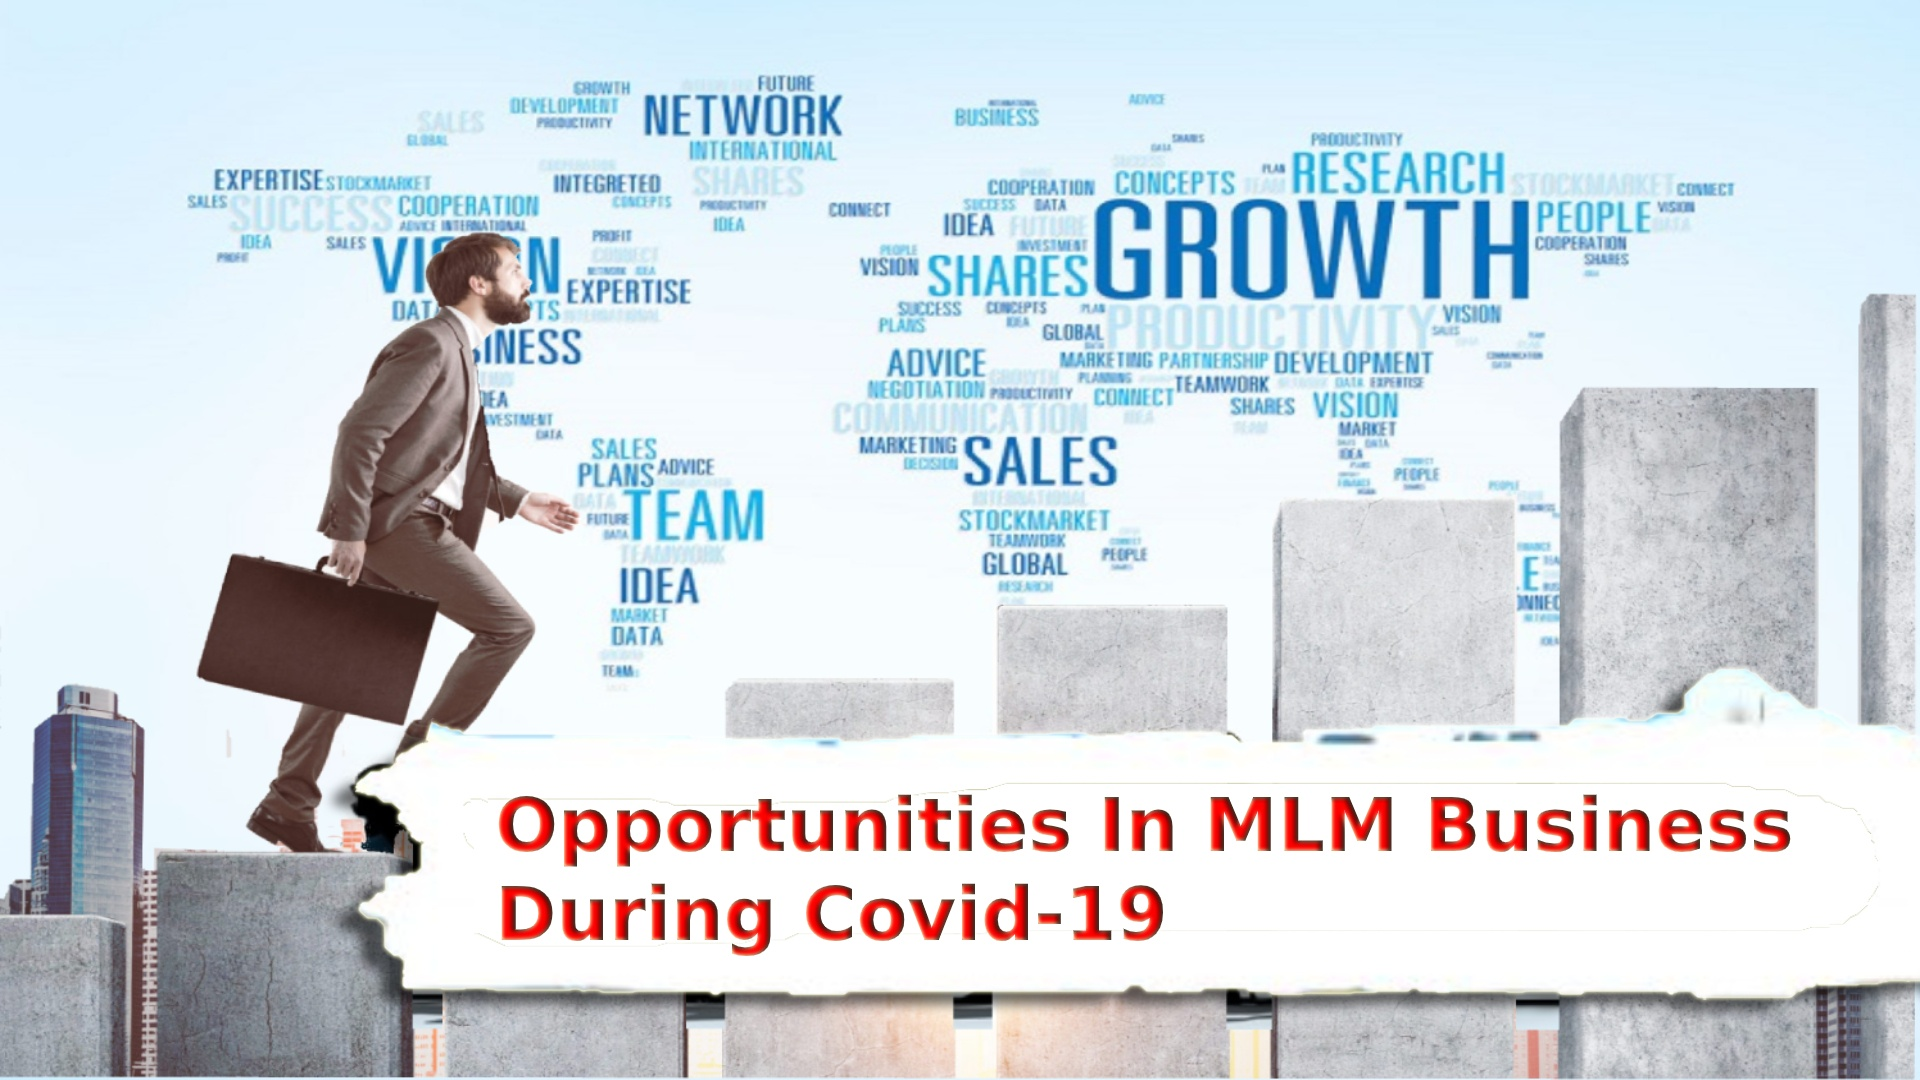 Opportunities In MLM Business During Covid-19